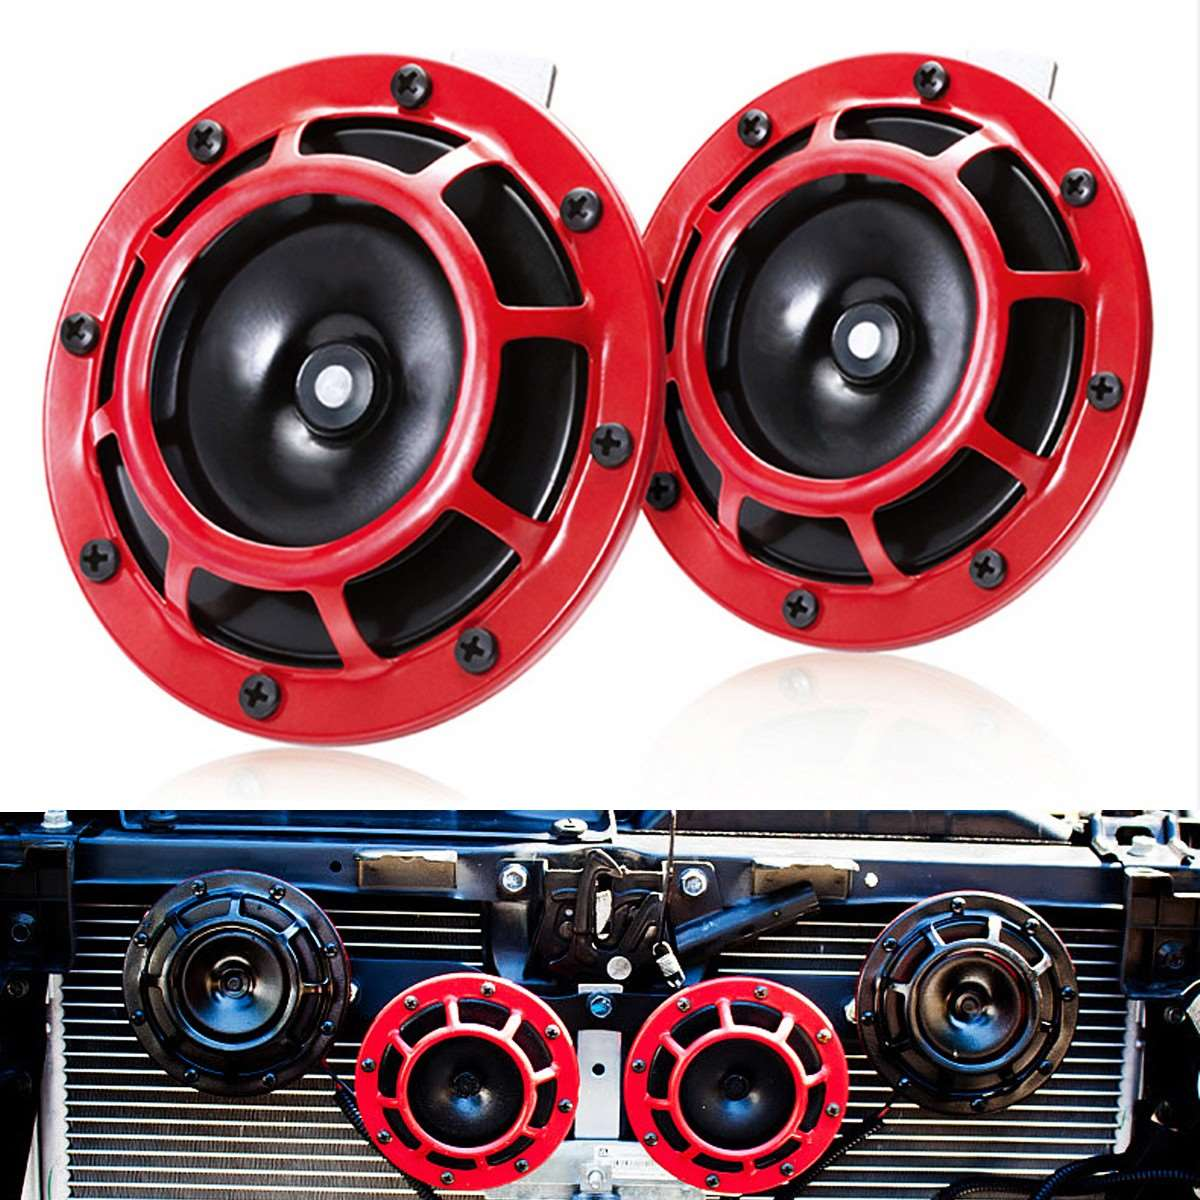 2 Pcs Universal Grille Mount Super Tone Loud 12V Compact Electric Red Horn Kit